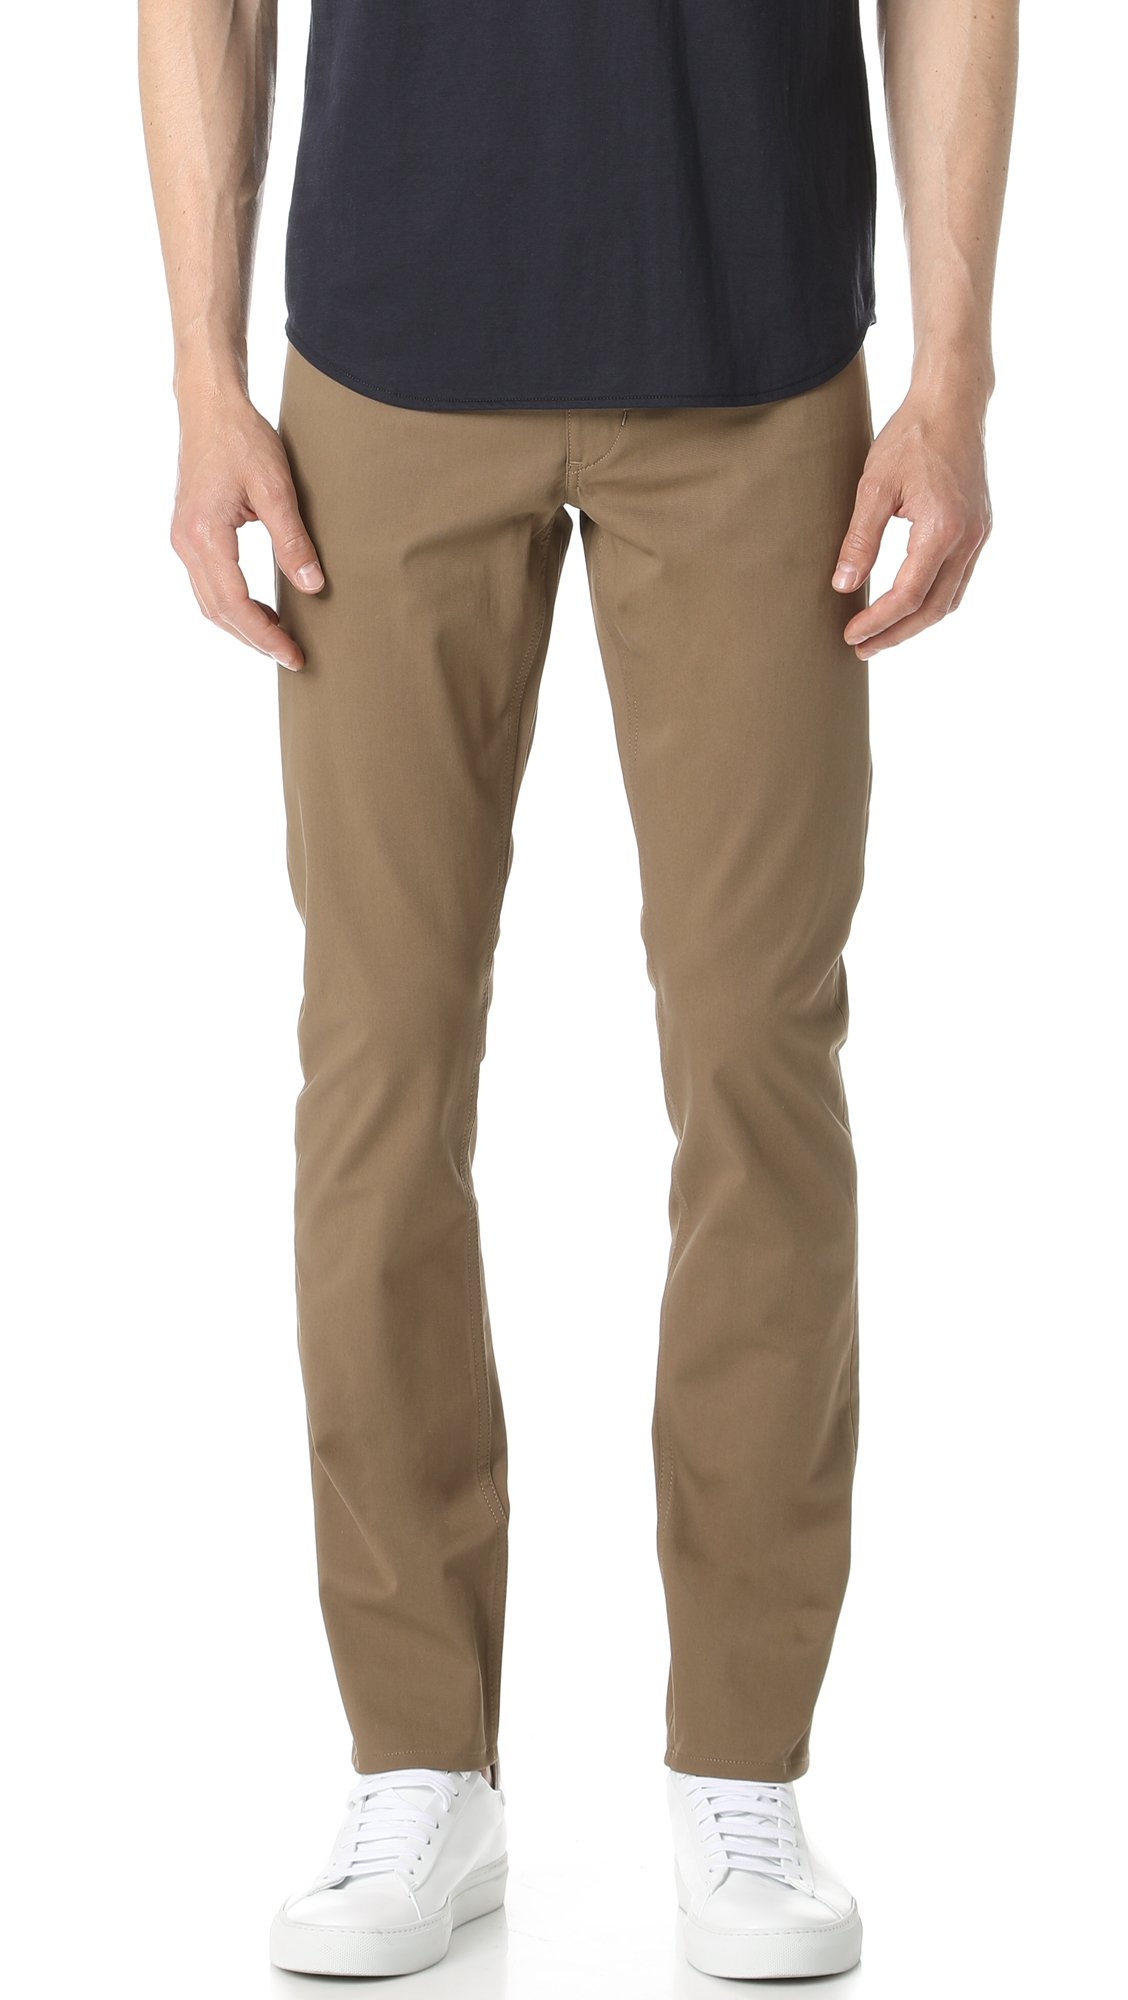 Theory Men's New 5 Pocket Slim Fitting Haydin Writer Pant, Brae, 34